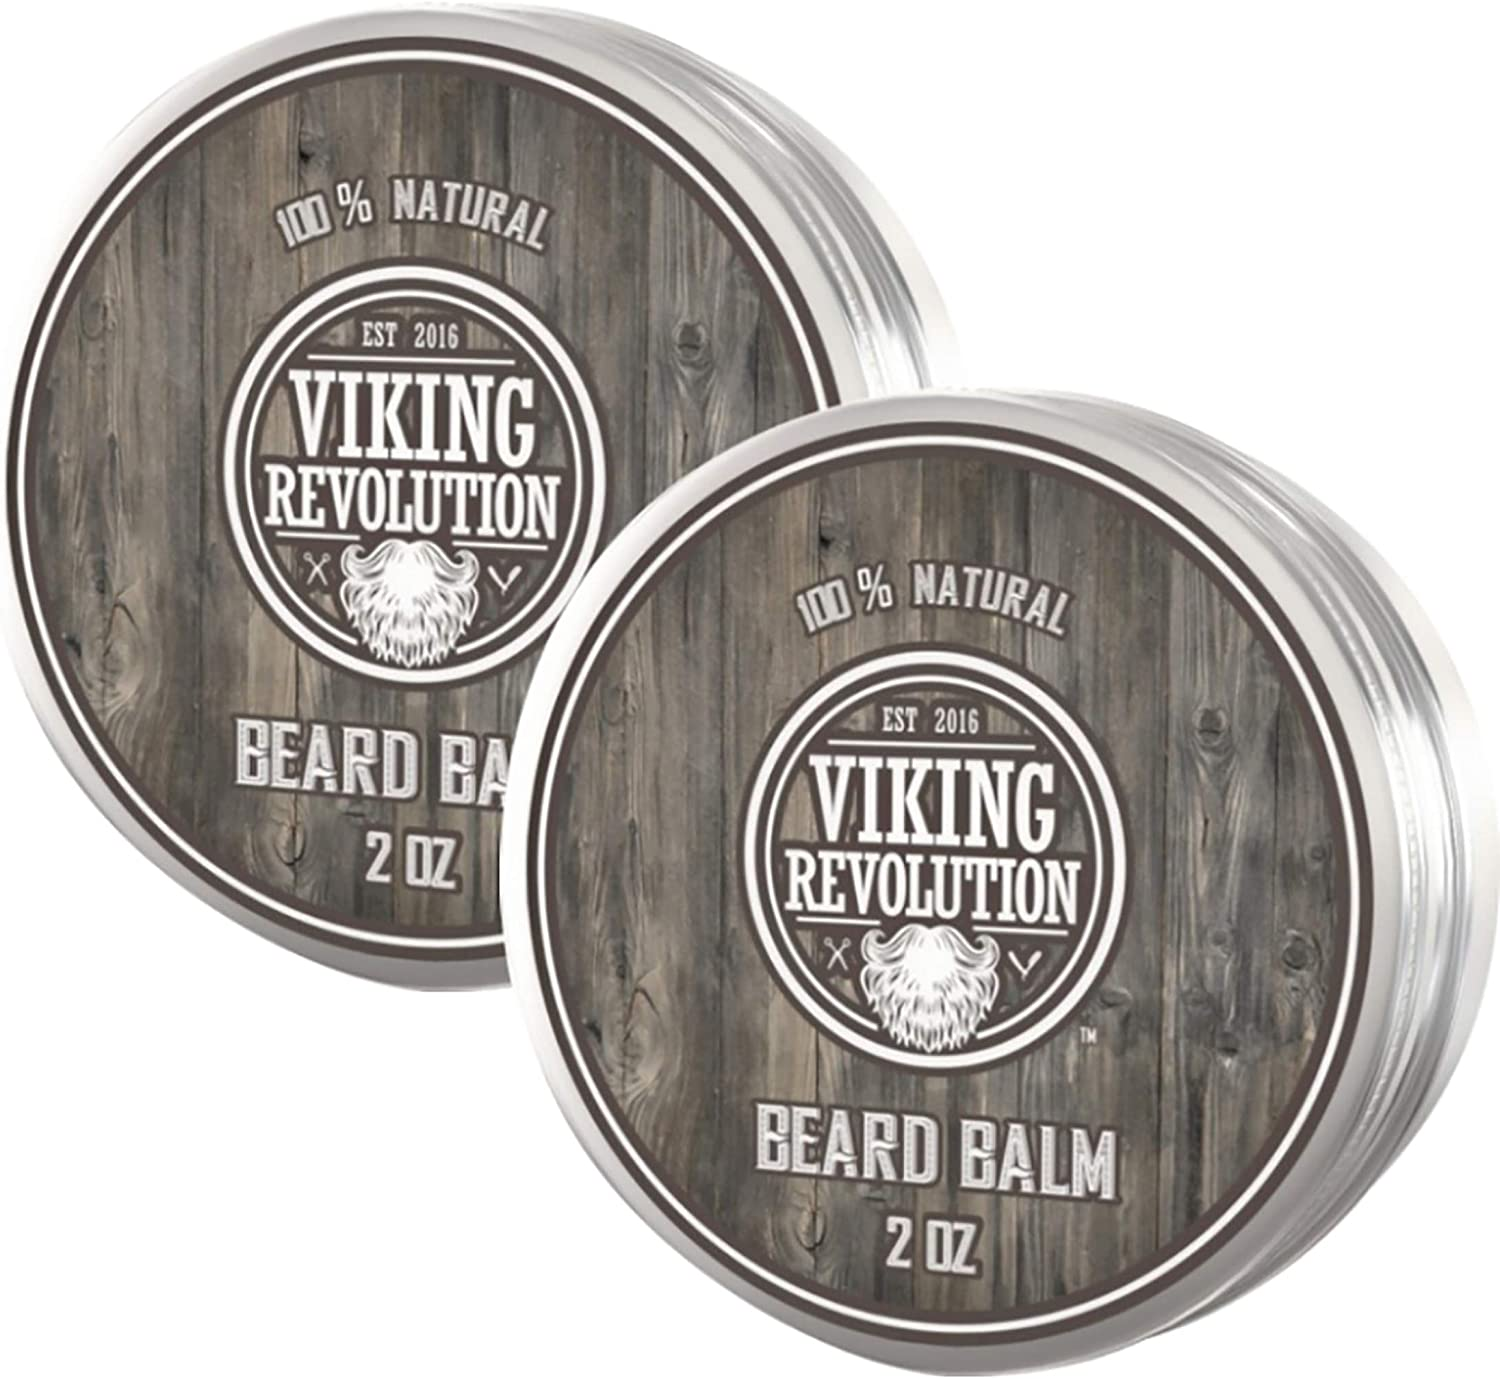 Viking Revolution Beard Balm - All Natural Grooming Treatment with Argan Oil & Mango Butter - Strengthens & Softens Beards & Mustaches - Citrus Scent Leave in Conditioner Wax for Men - 2 Pack